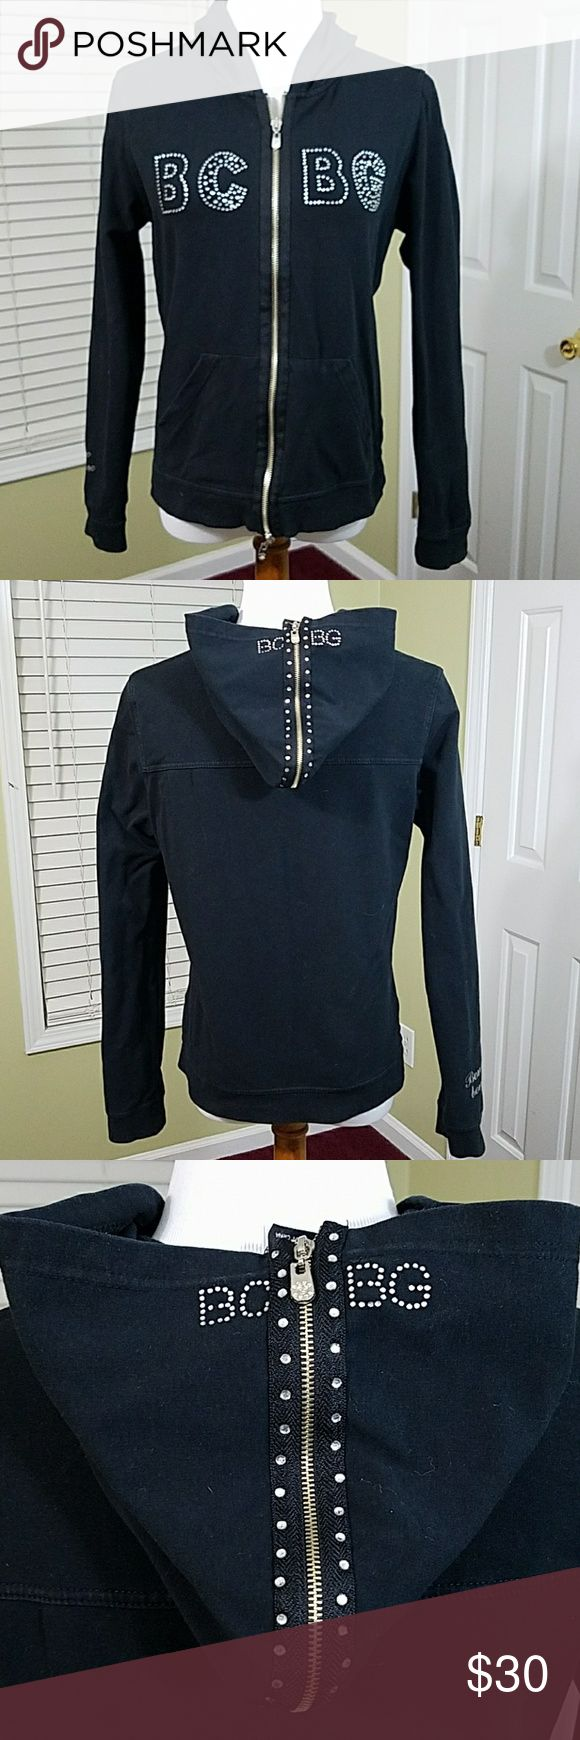 BCBG black zip up hoodie jacket with bling BCBG black zip up hoodie jacket with bling.  In good condition.  Approximate measurement shown in pictures.  Materials shown in pictures. Has Bon chic Bon genre on right sleeve. BCBGMaxAzria Jackets & Coats